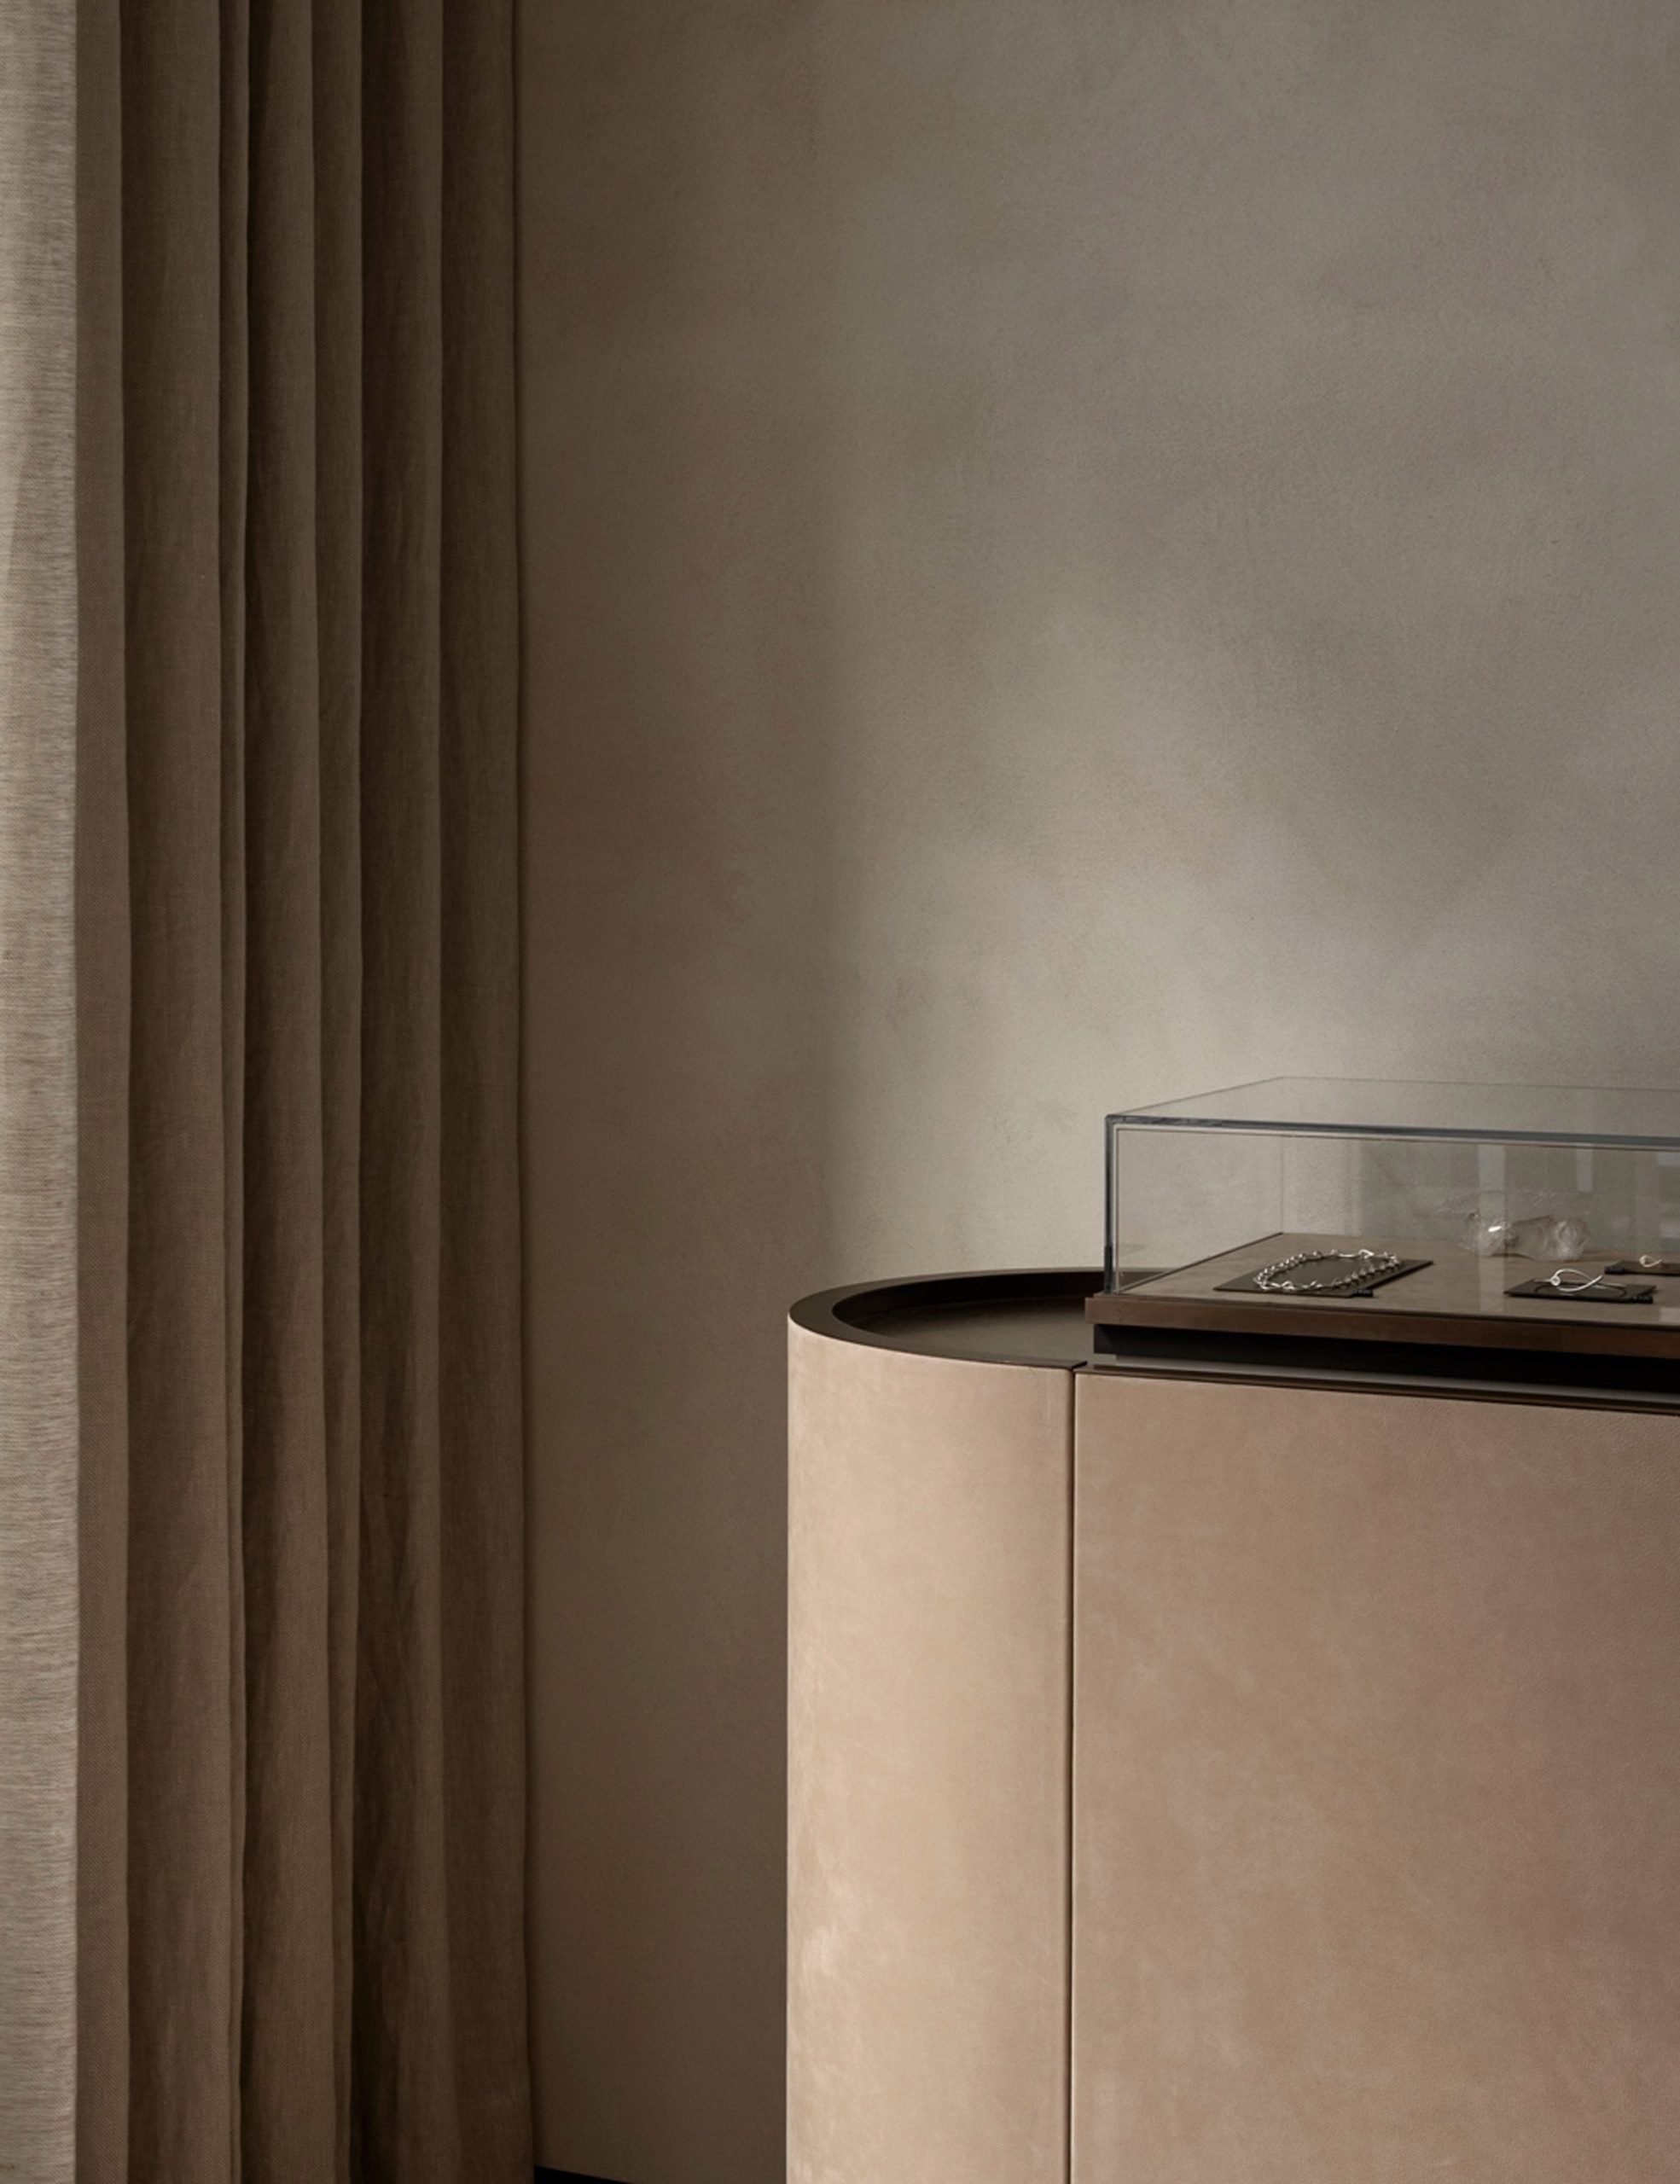 Curtains and suede display case in retail interior by Norm Architects